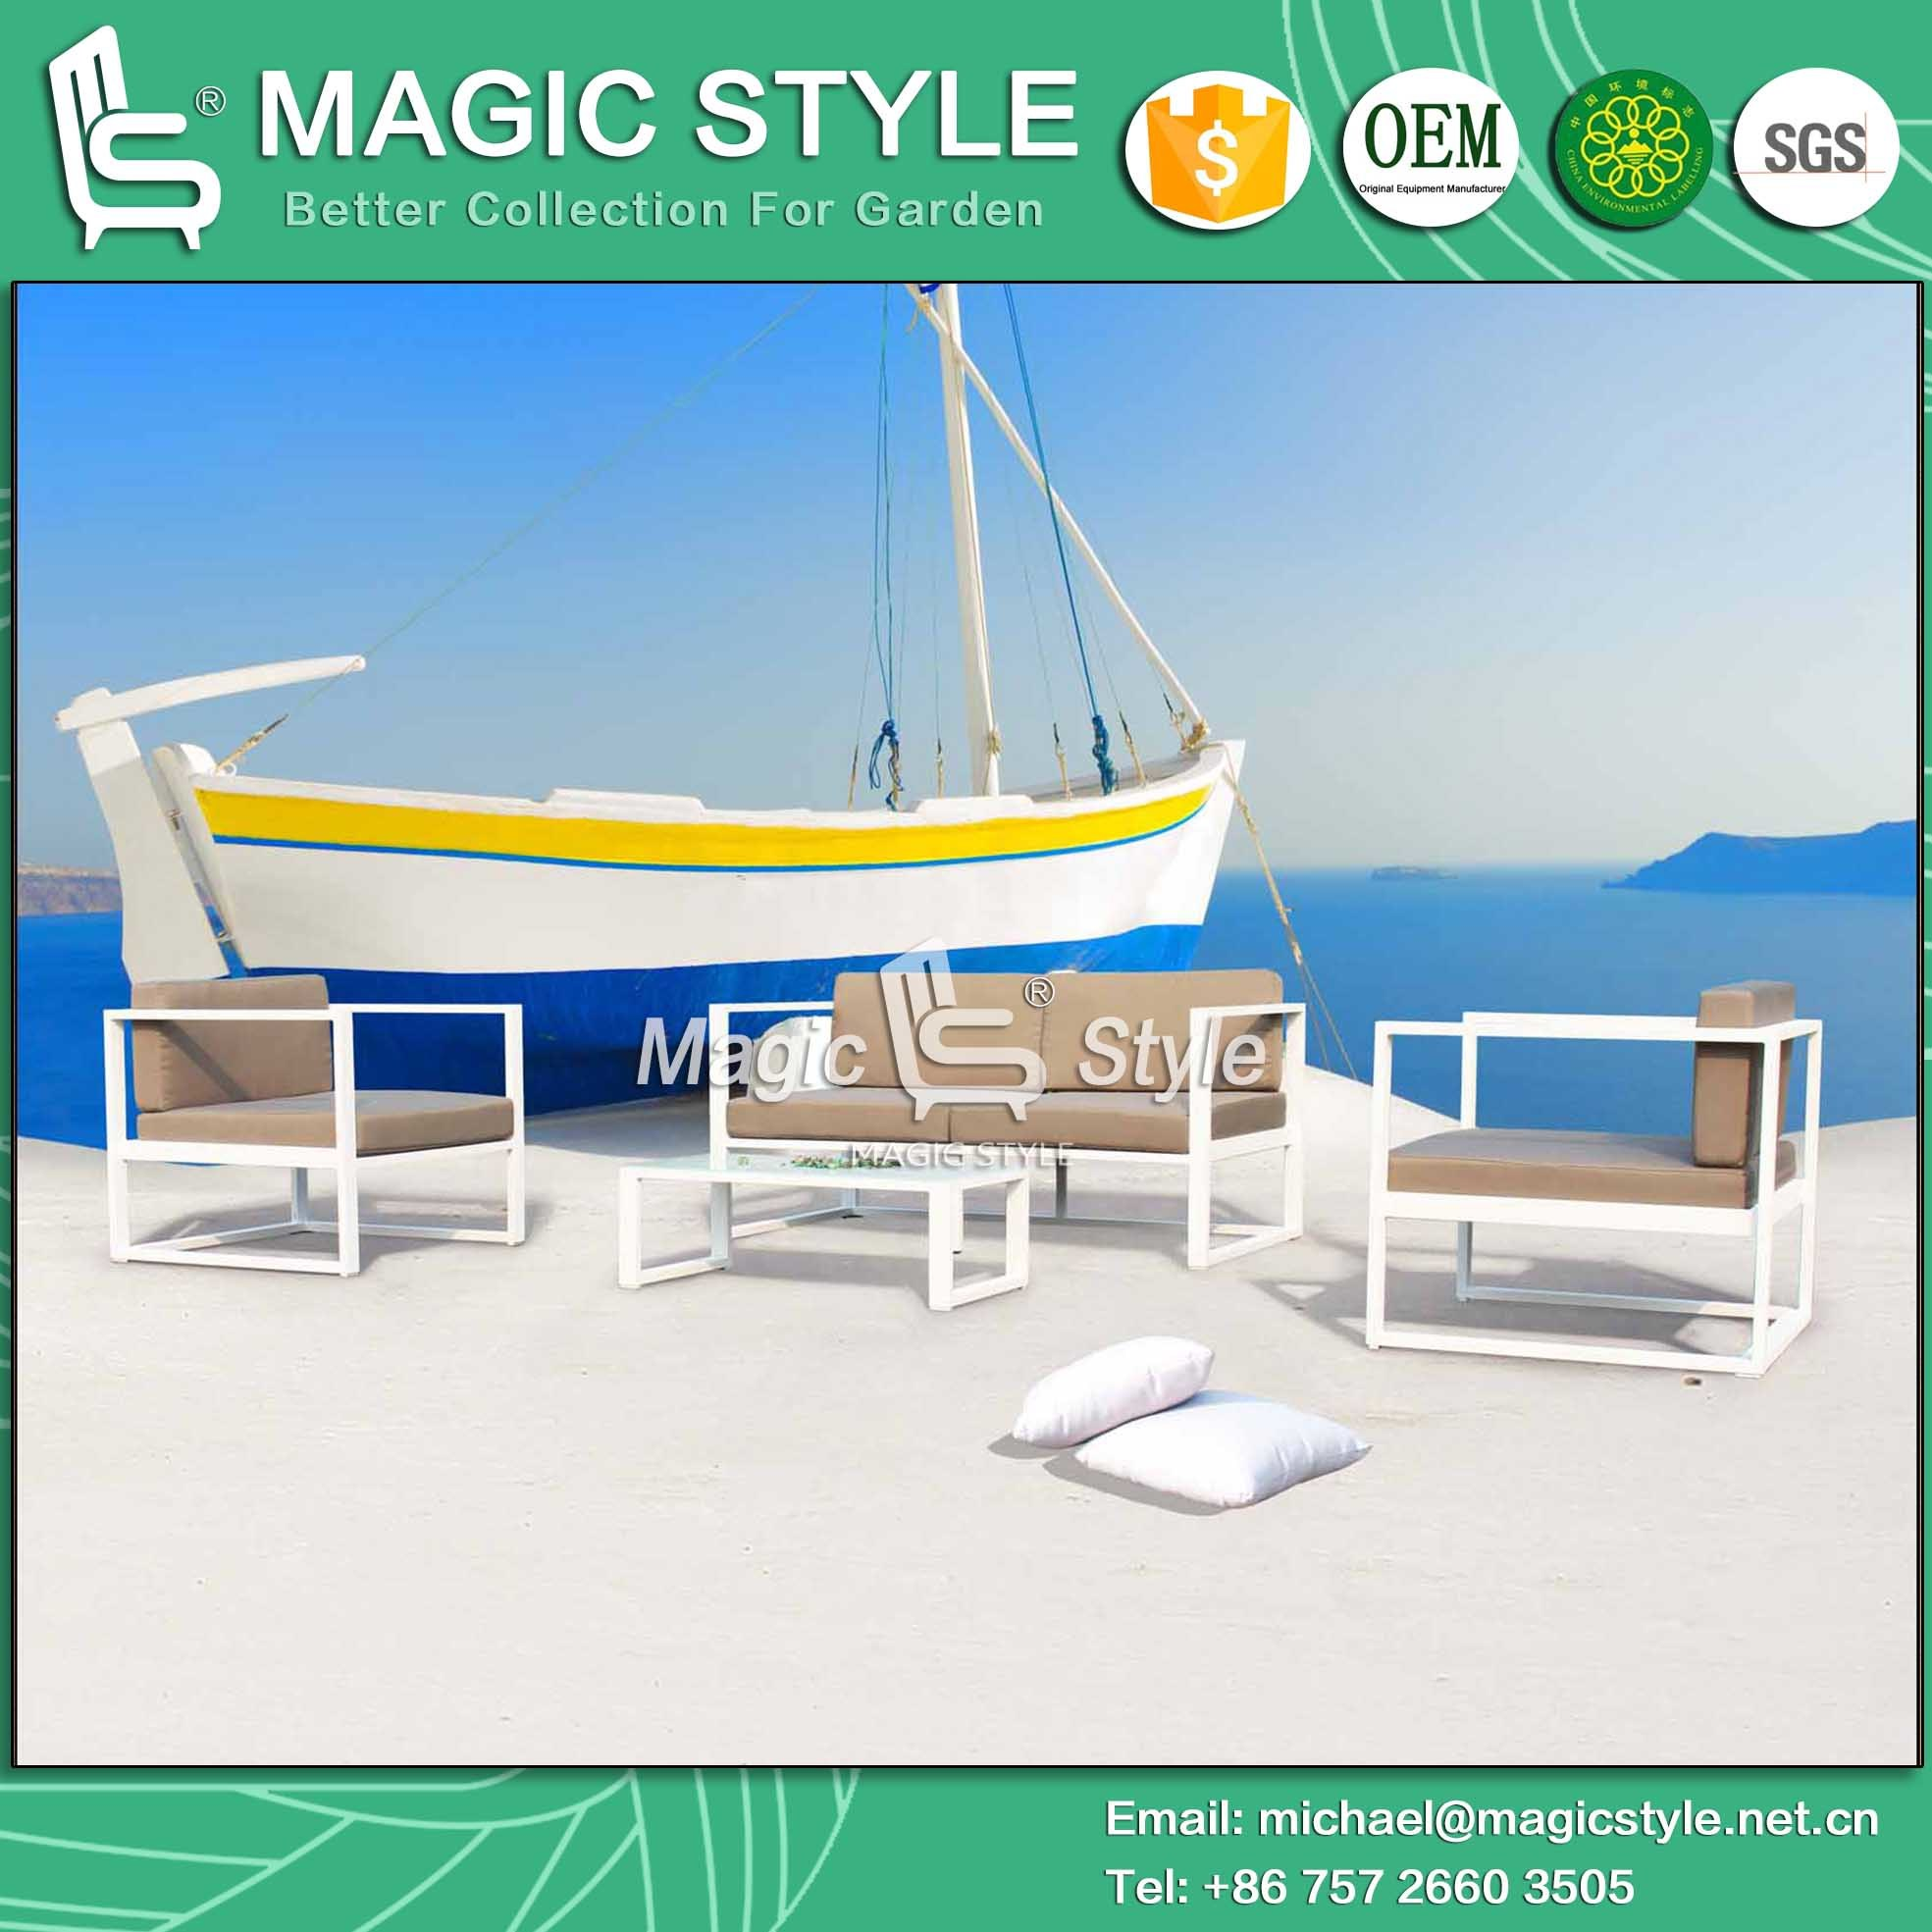 Aluminum Sofa Outdoor Furniture New Design Sofa Patio Sofa Garden Sofa Hotel Project Combination Sofa Set Leisure Sofa (Magic Style)